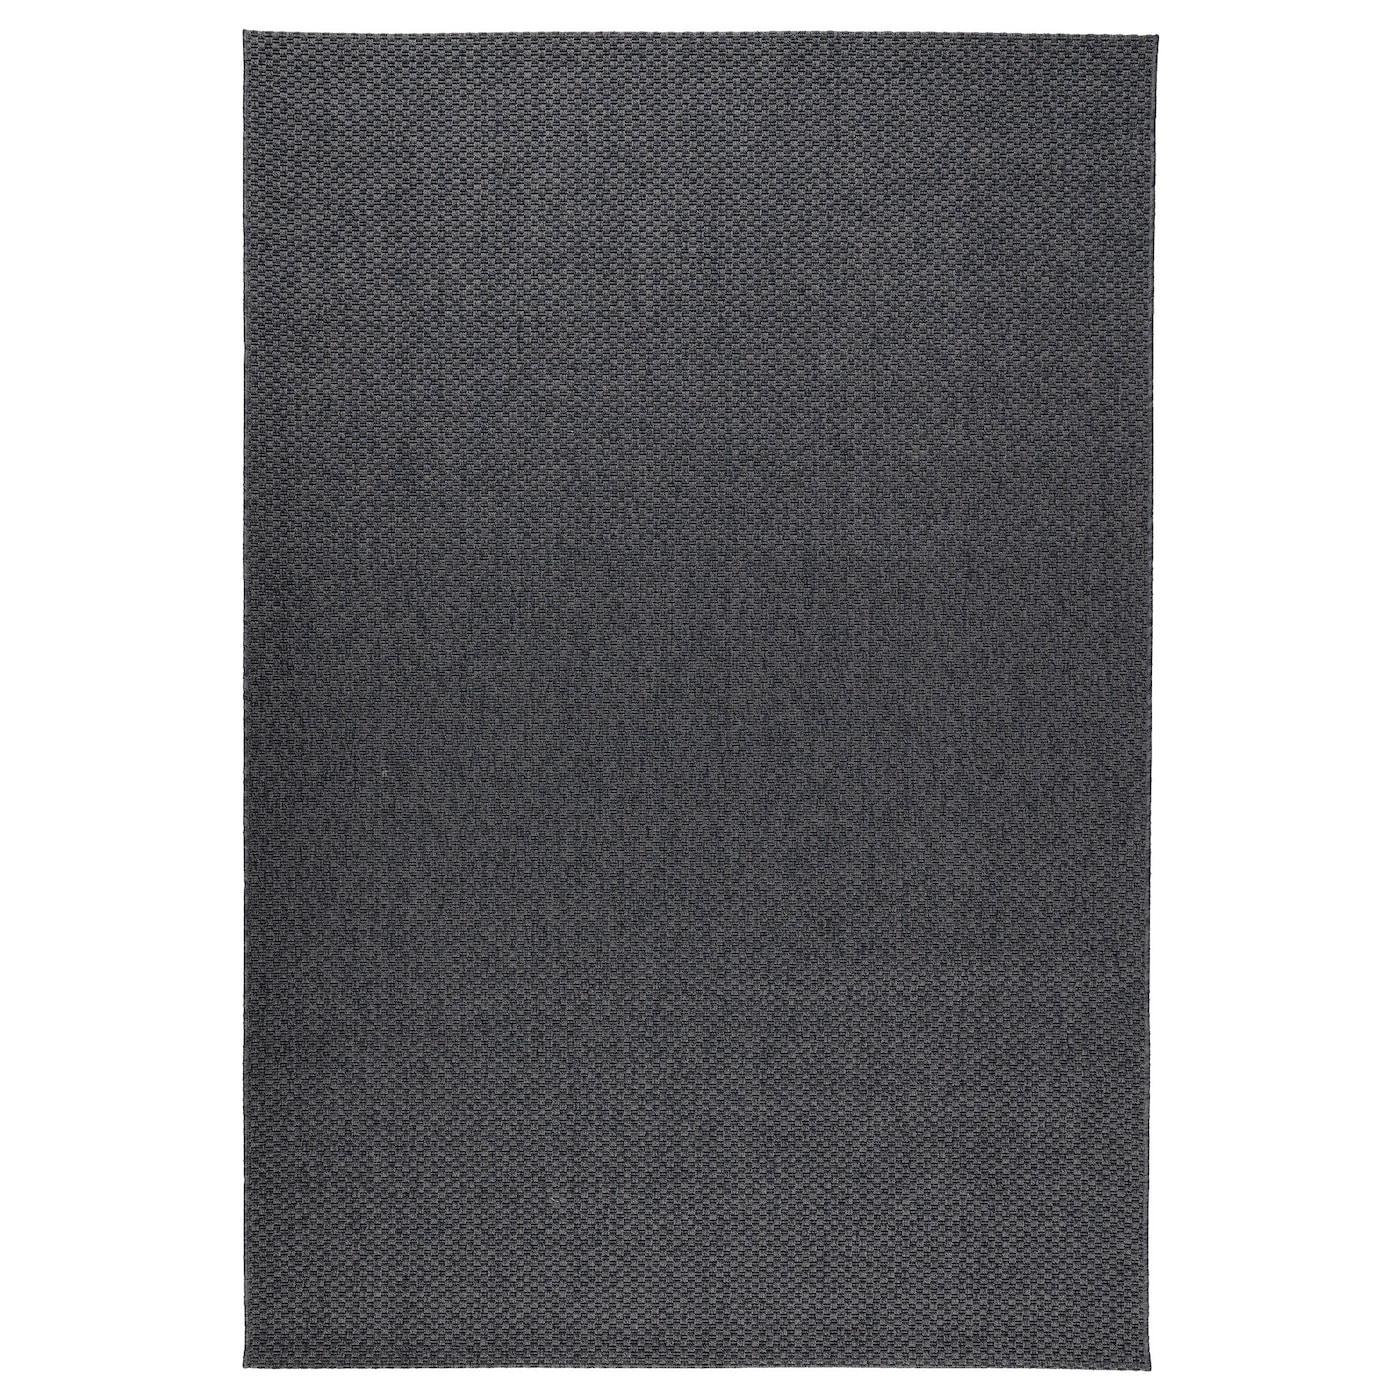 Morum Rug Flatwoven In Outdoor Dark Grey